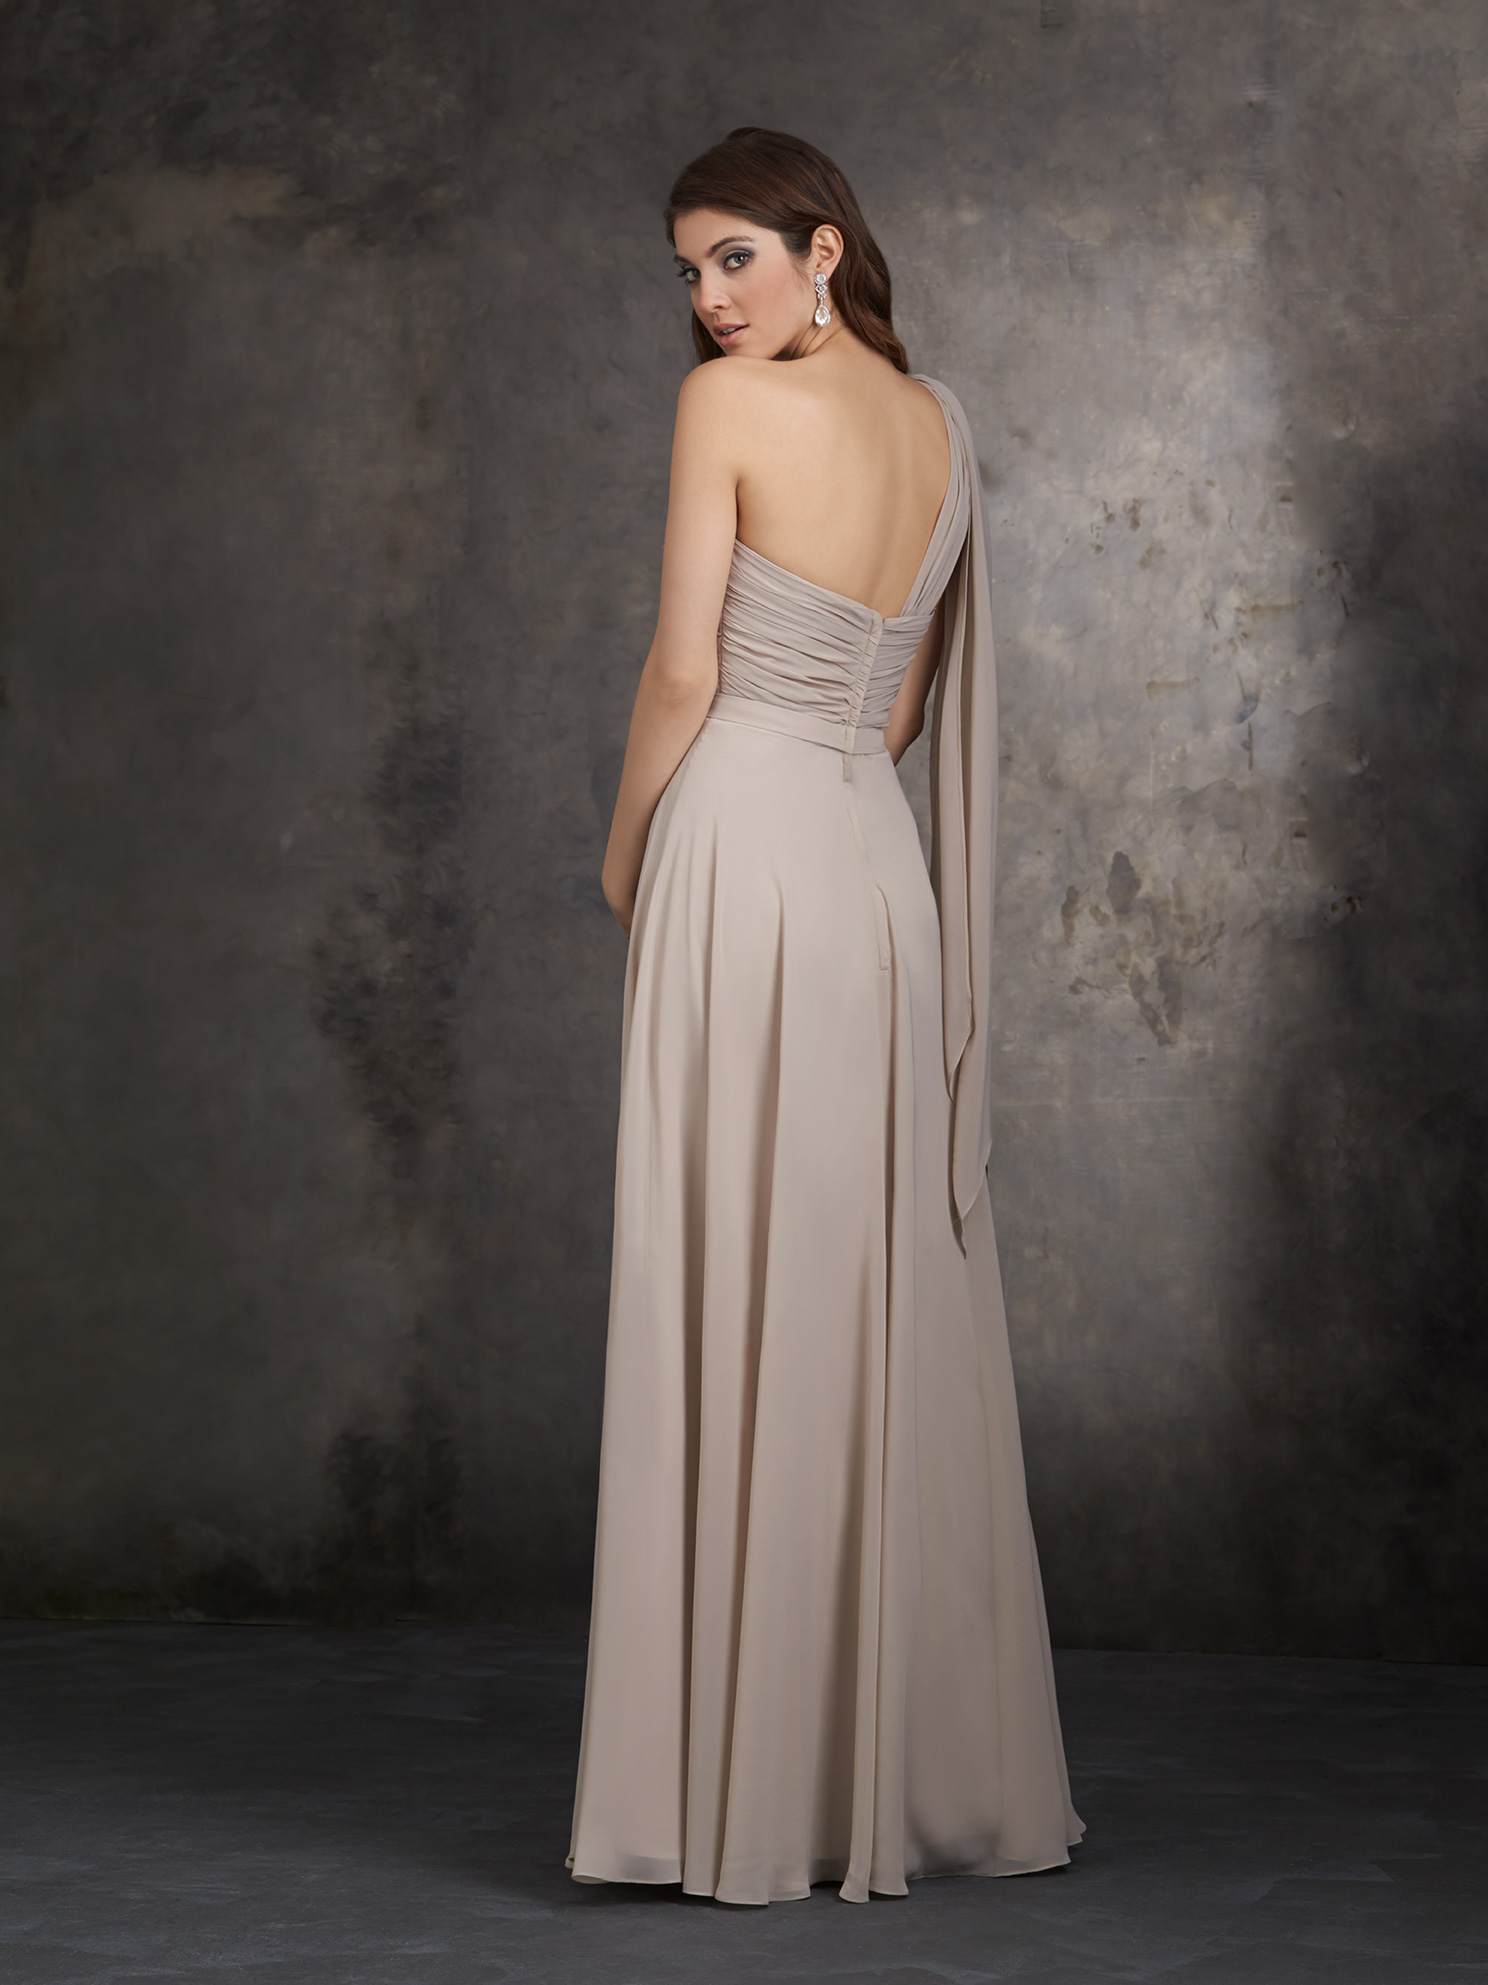 f7d6f6bbc12 Allure Bridesmaids 1407 - Couture Bridal